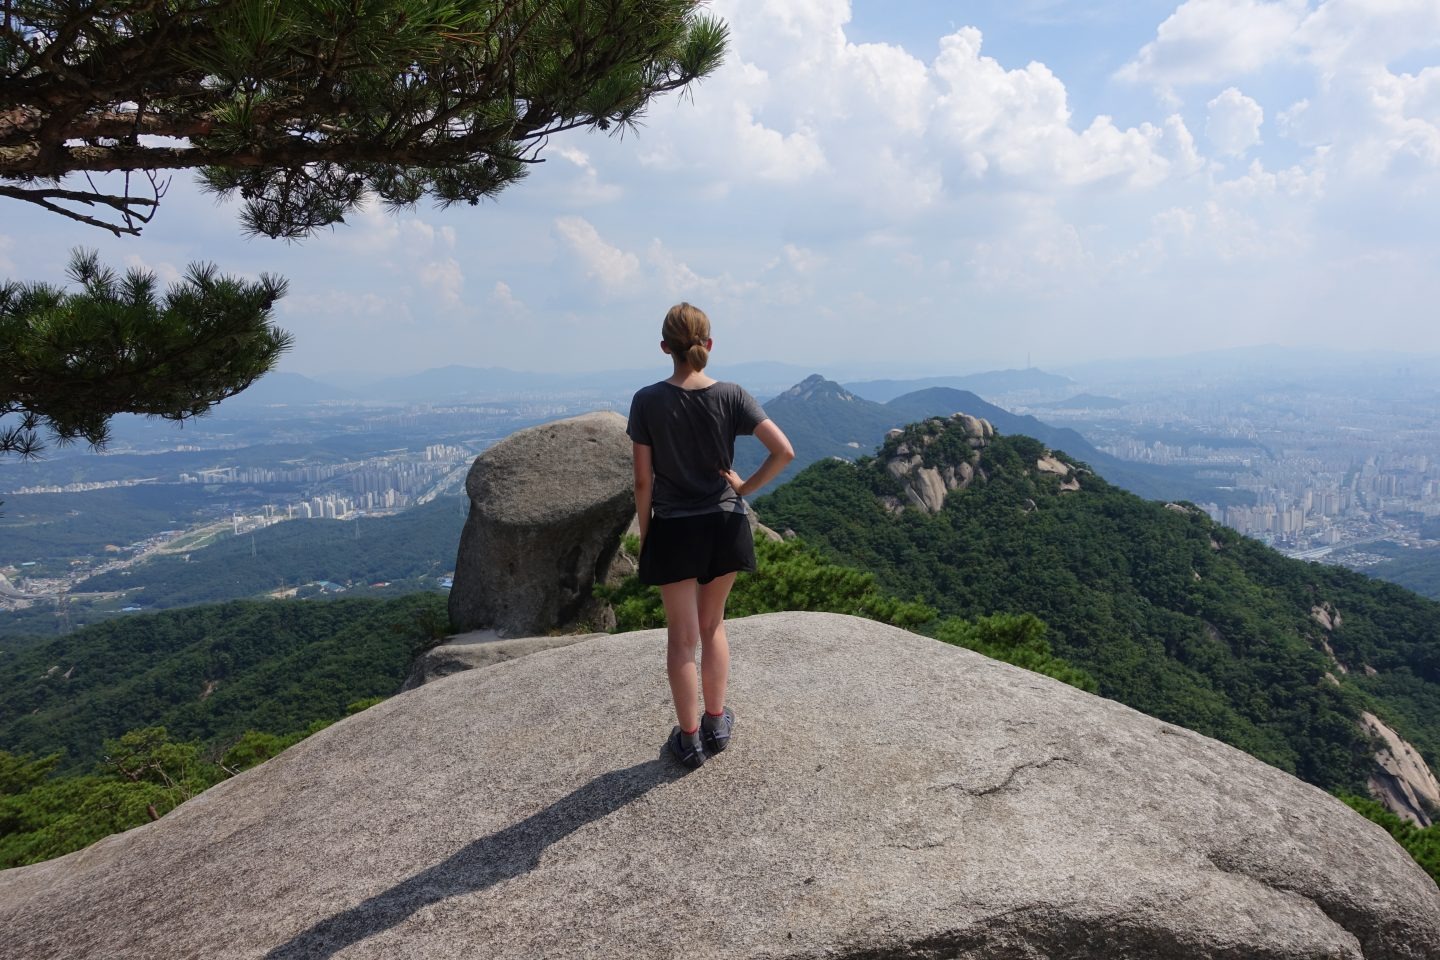 10 Things To Do in Seoul - Suraksan Mountain